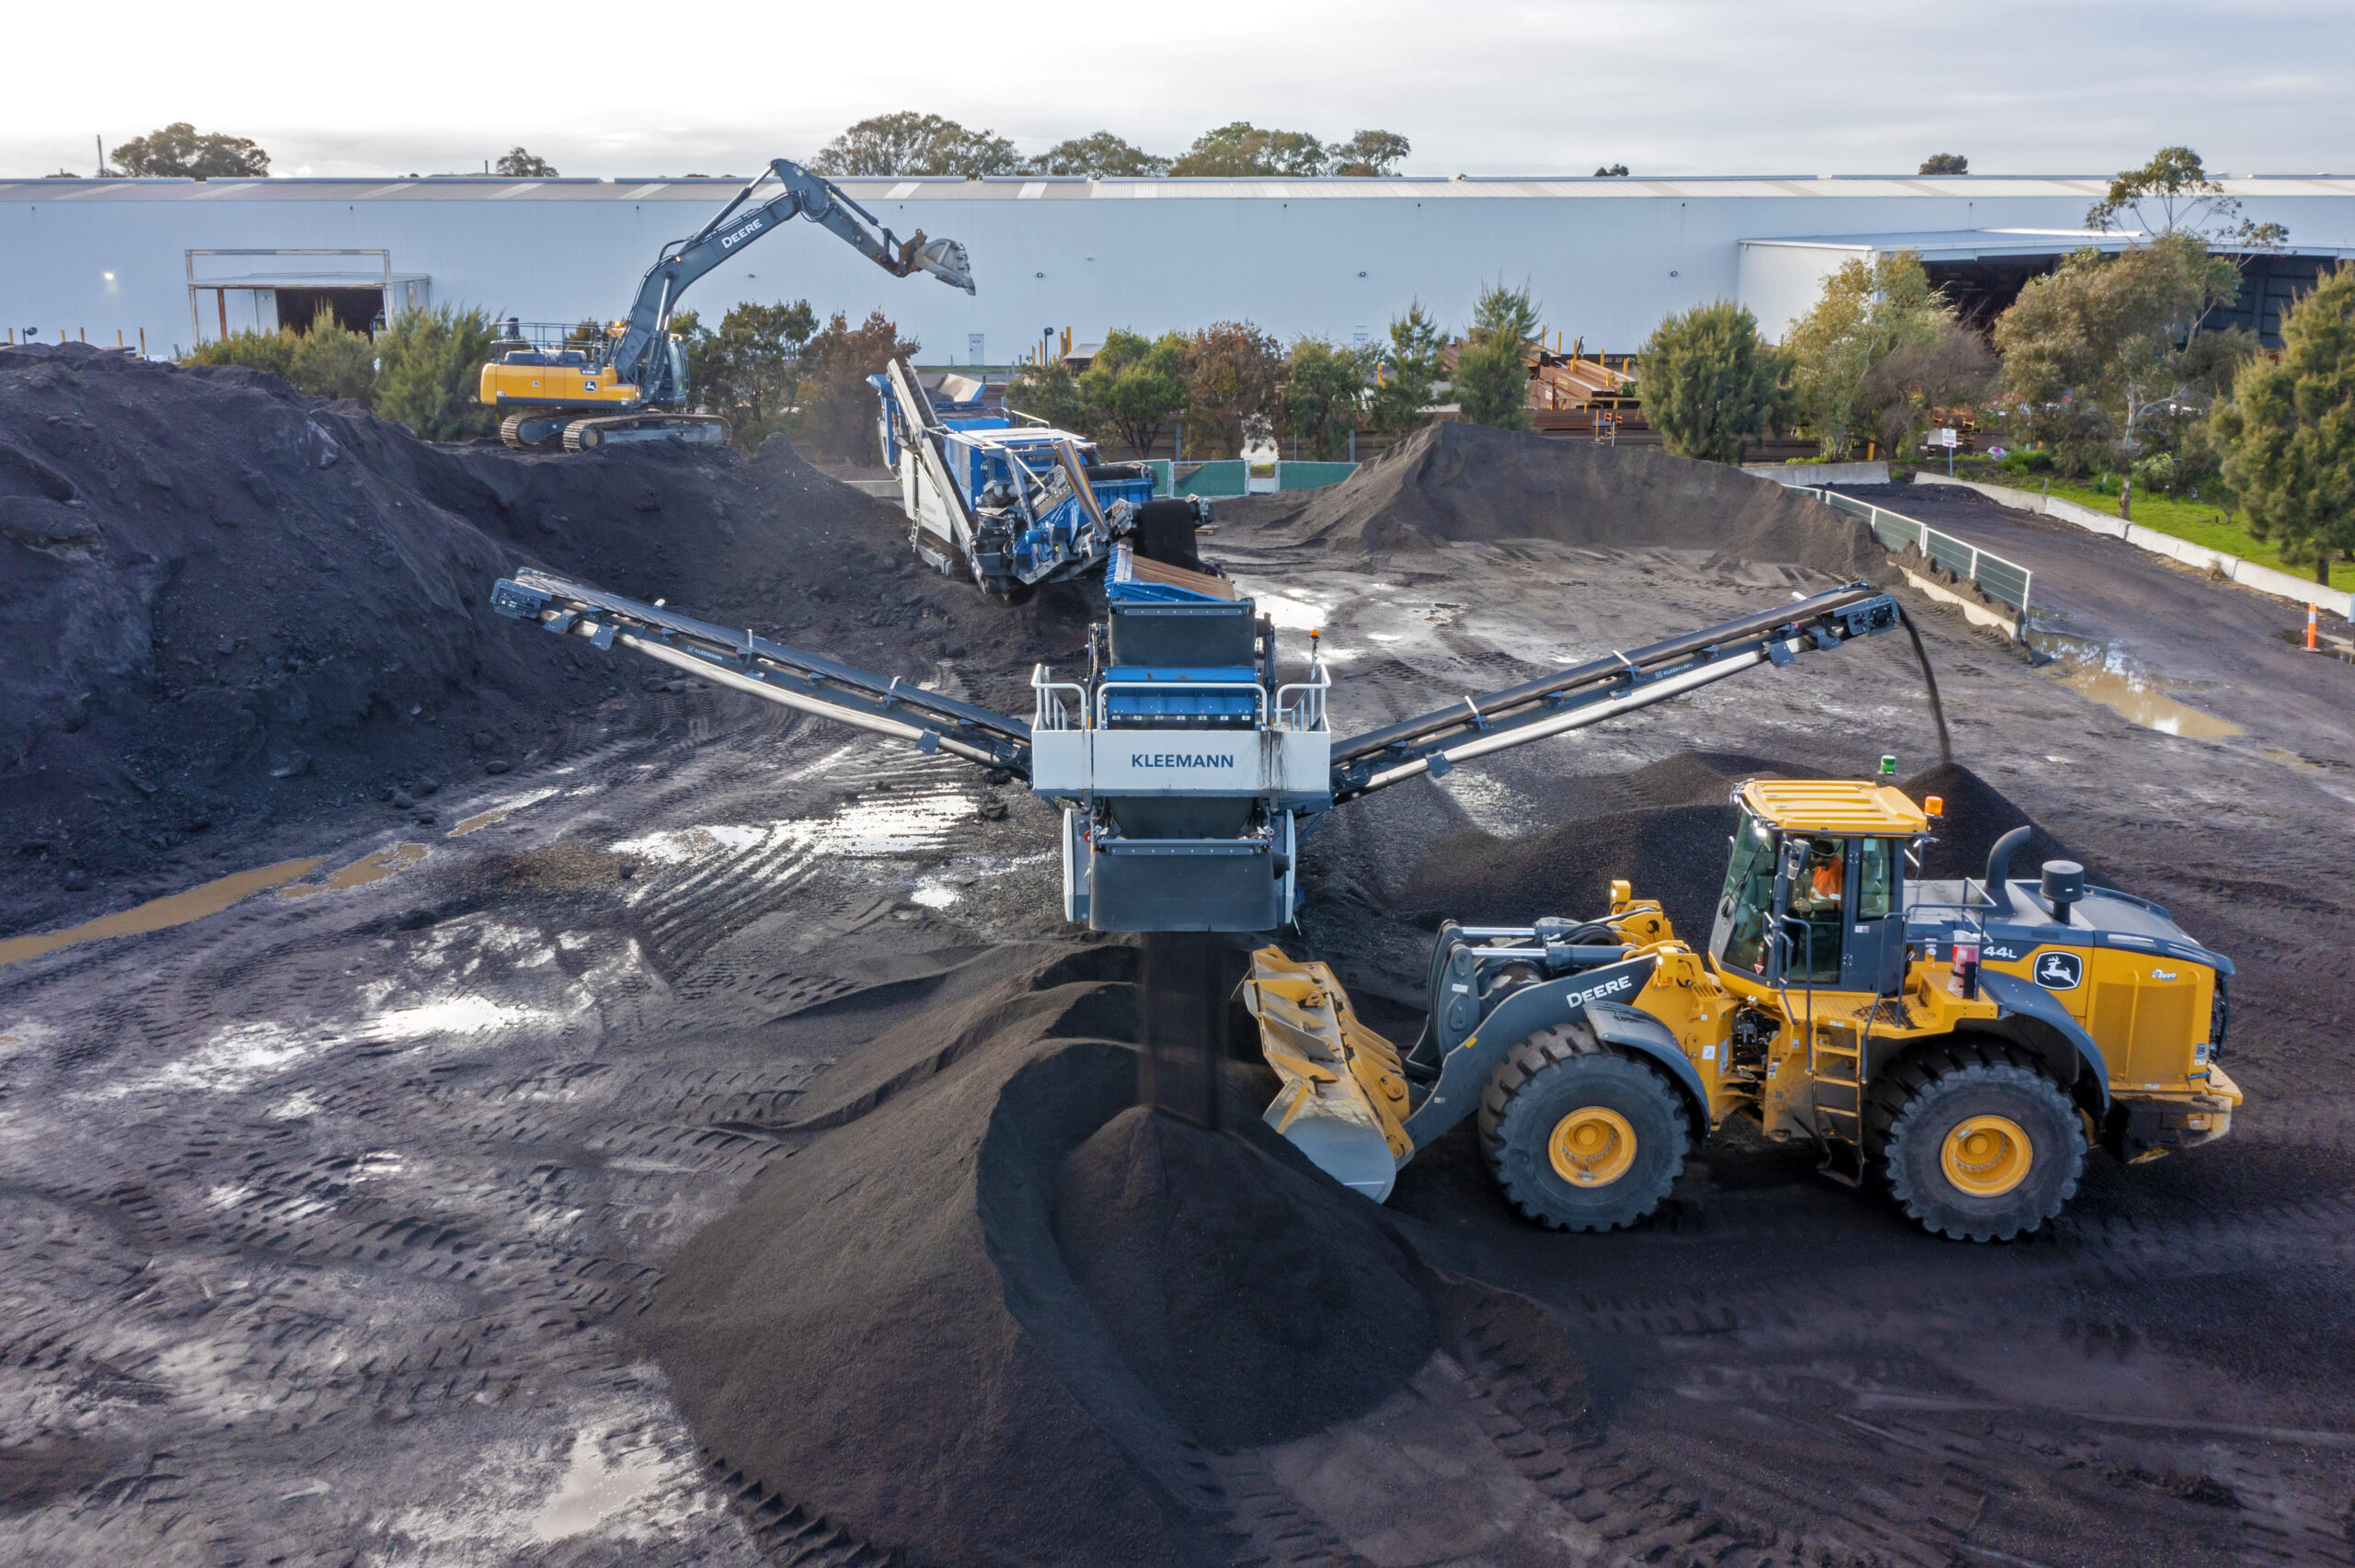 The combined power: John Deere and The Wirtgen Group